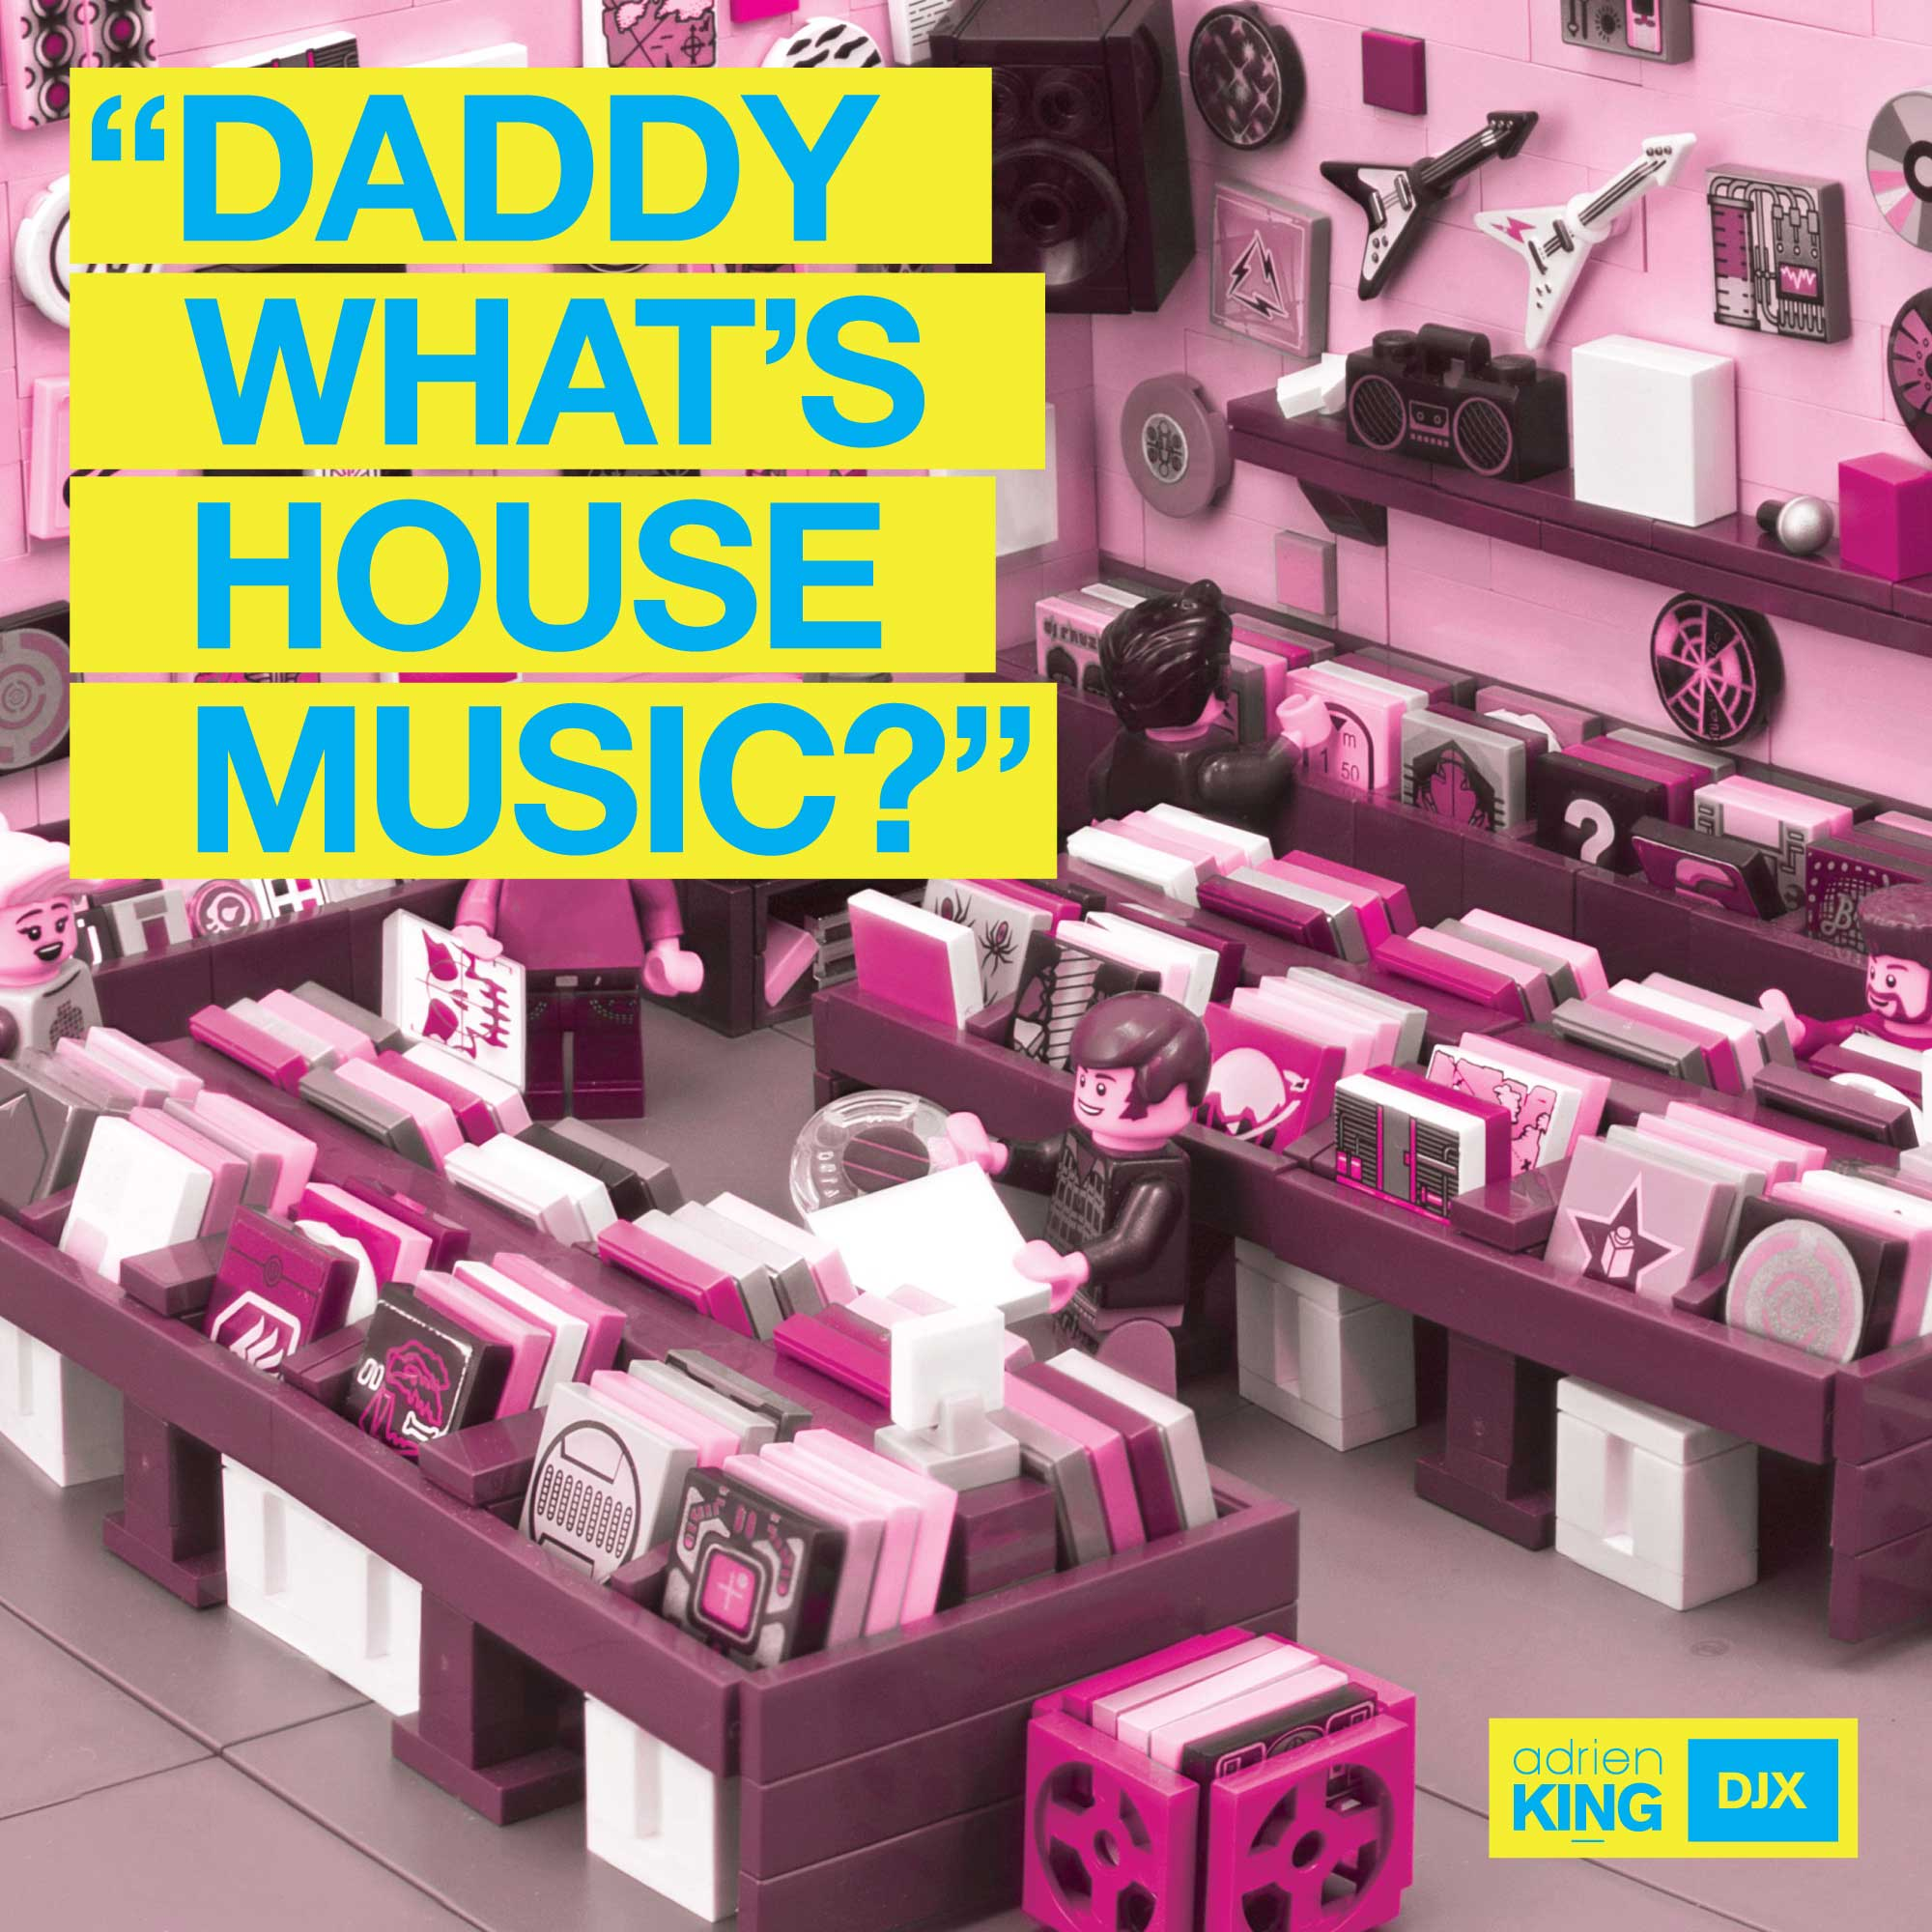 Daddy What's House Music? - Adrien King | DJX Toronto